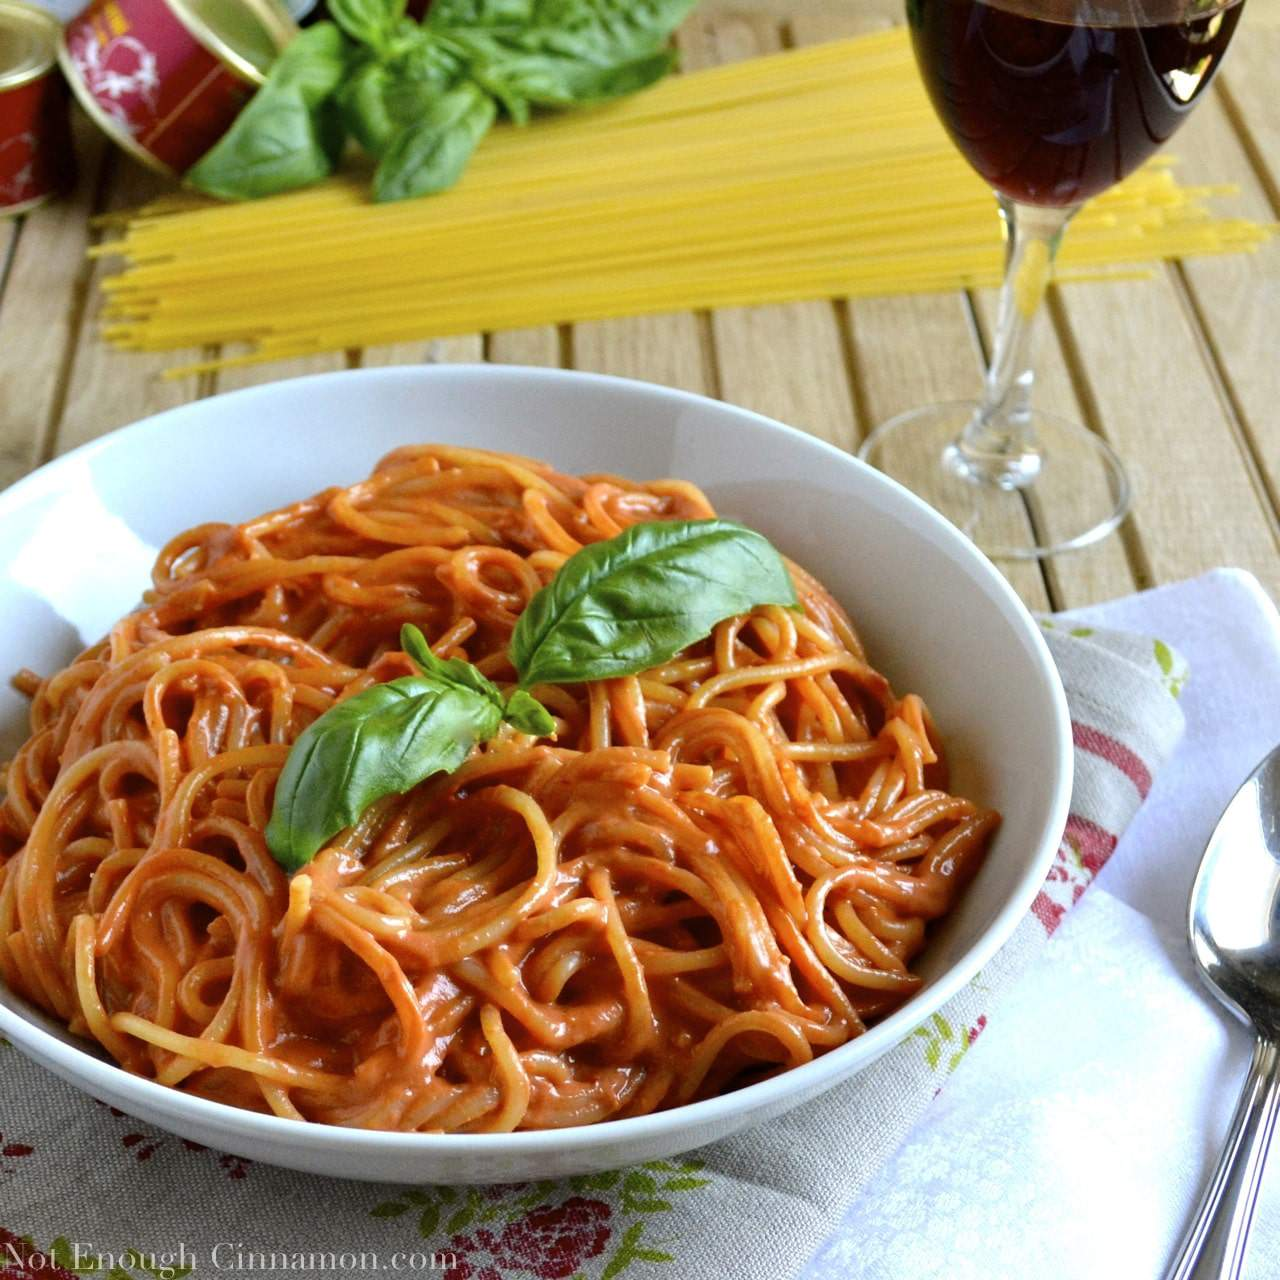 Pasta with Skinny Creamy Tomato Sauce - Not Enough Cinnamon